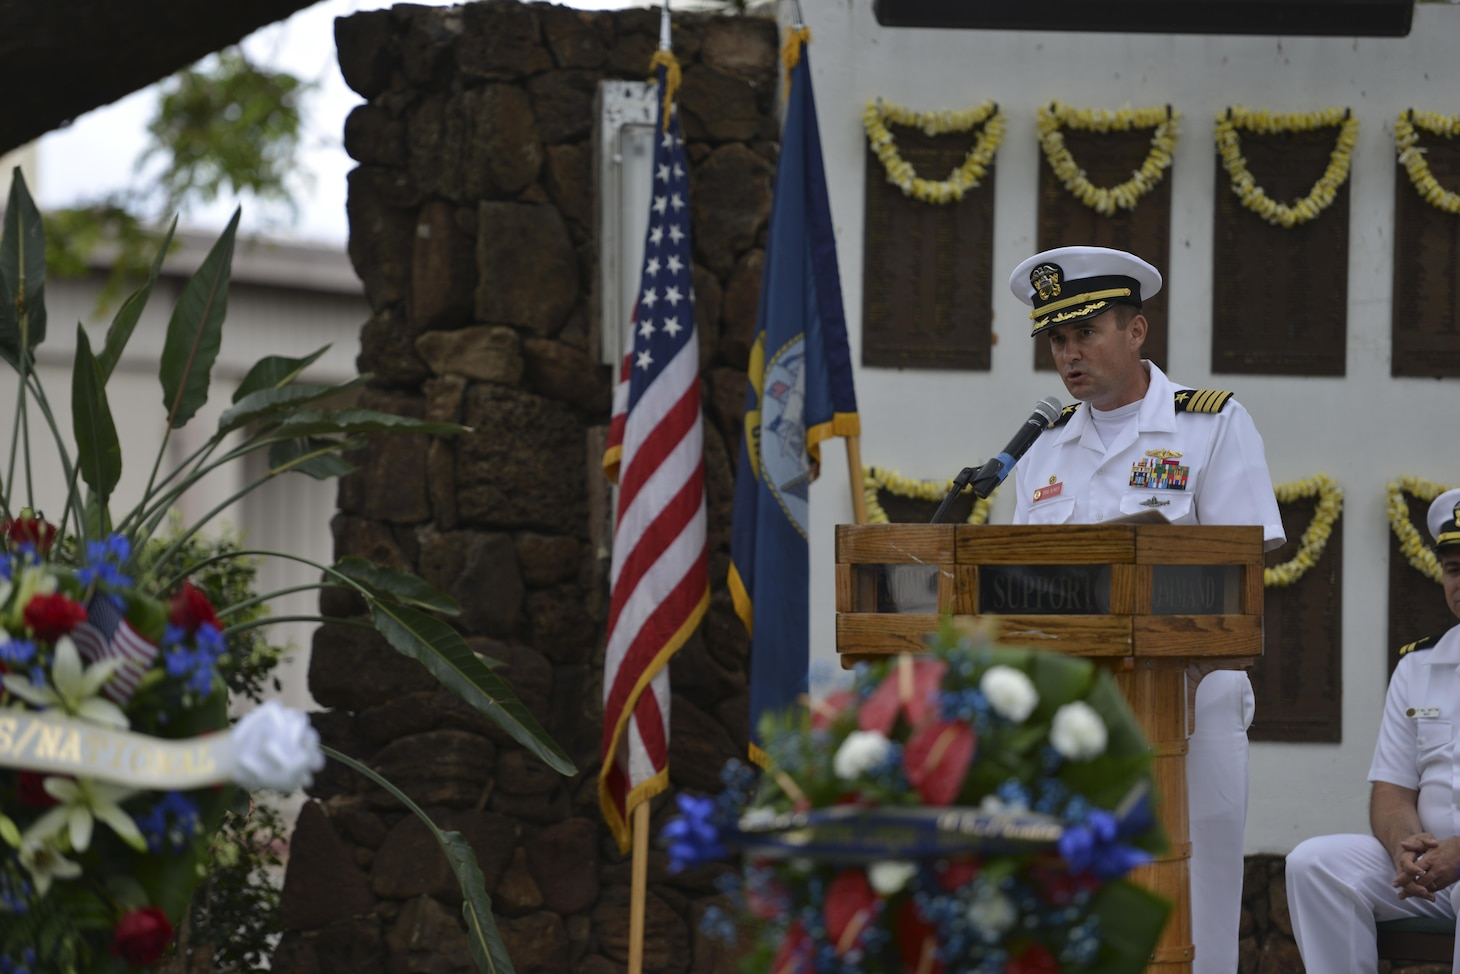 160530-N-LY160-895